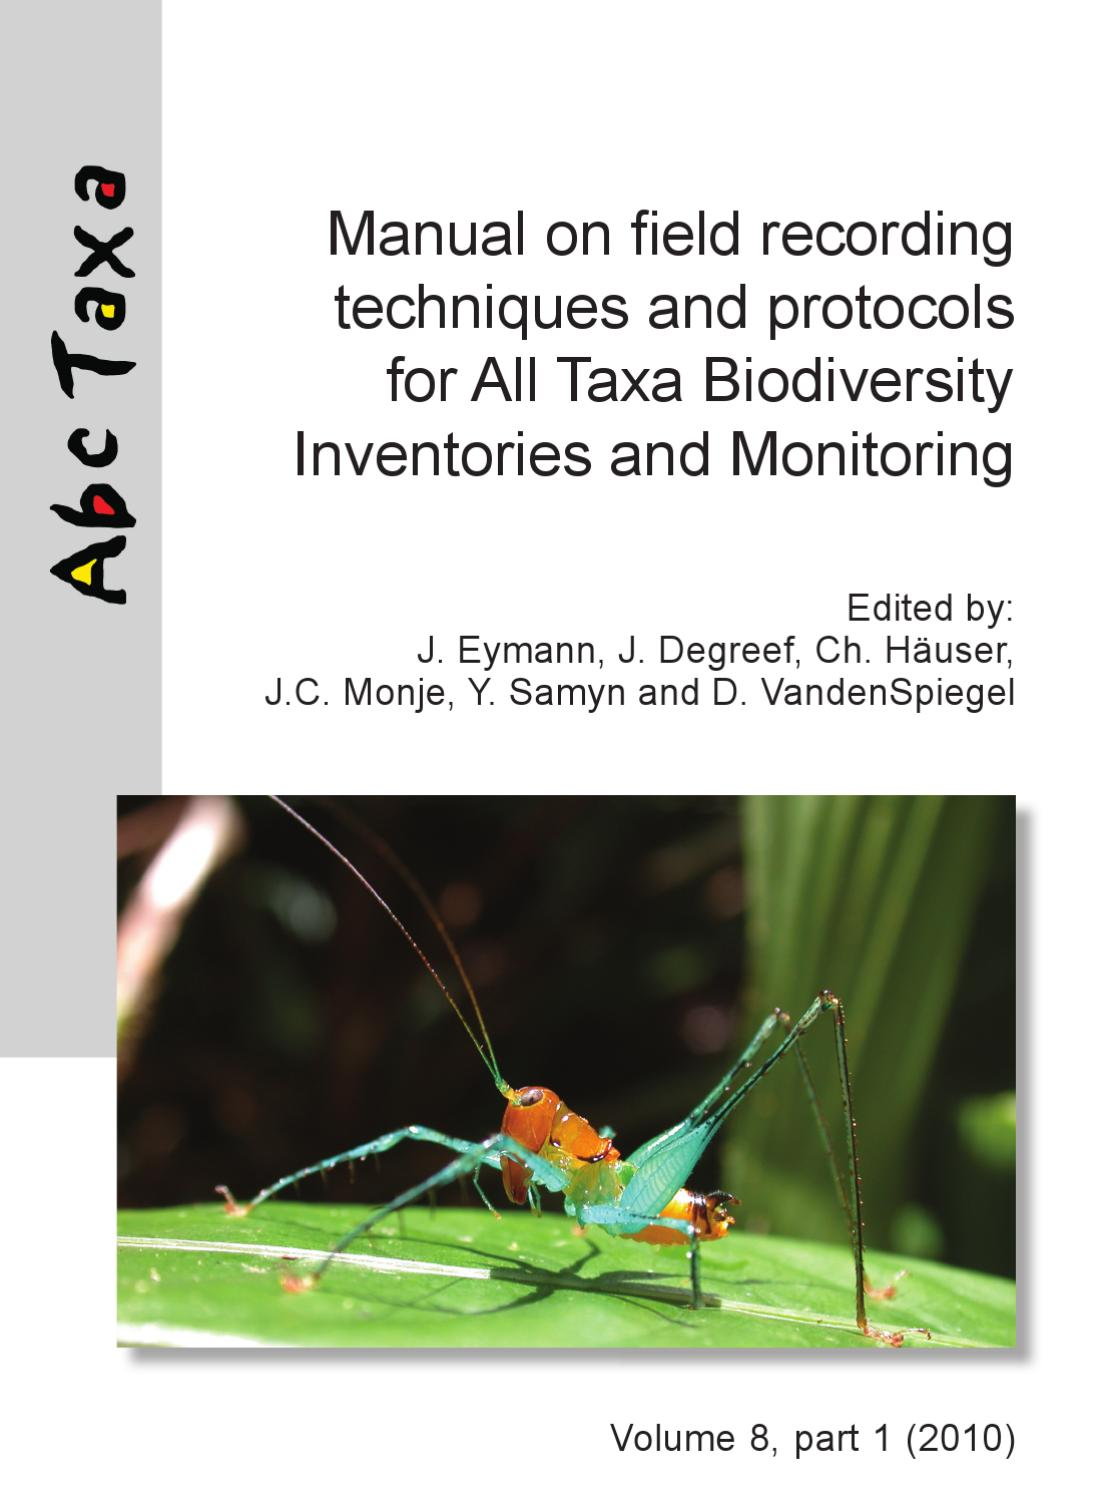 Manual on field recording techniques and protocols for ATBI+M by Yves Samyn  - issuu